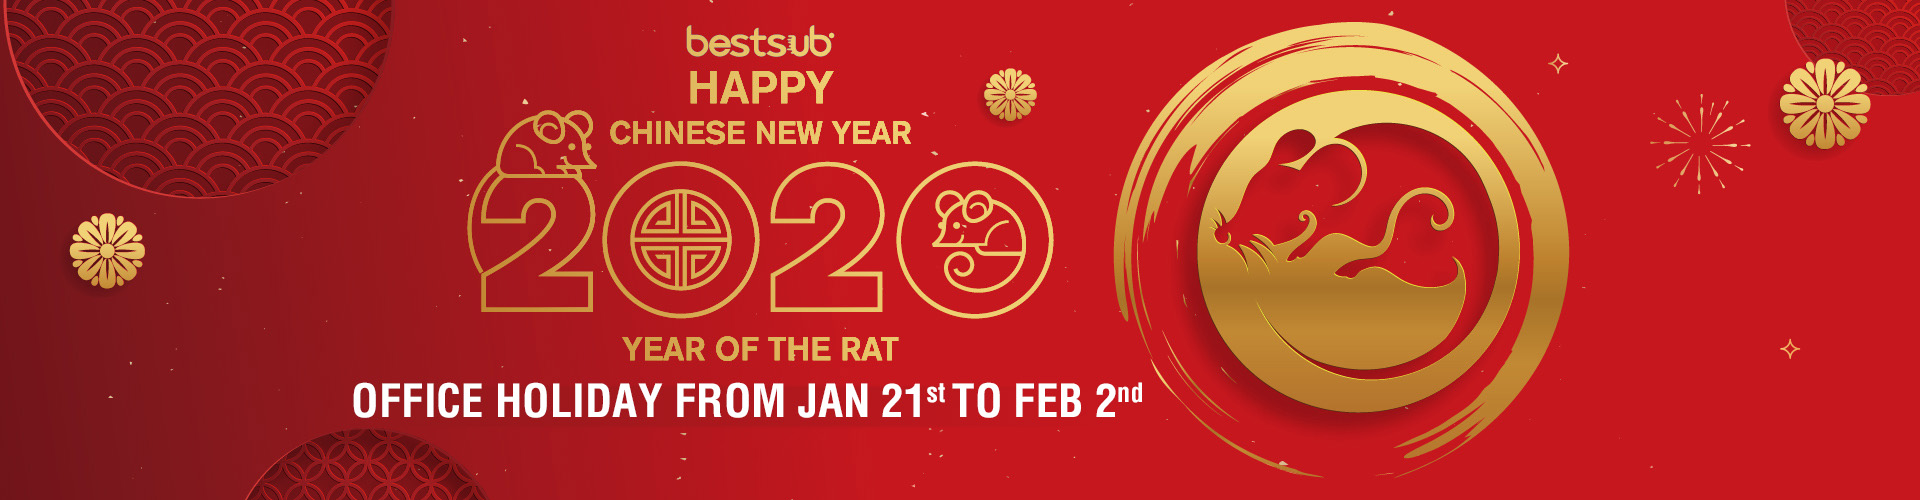 2020-1-10_happy_Chinese_new_year_new_web